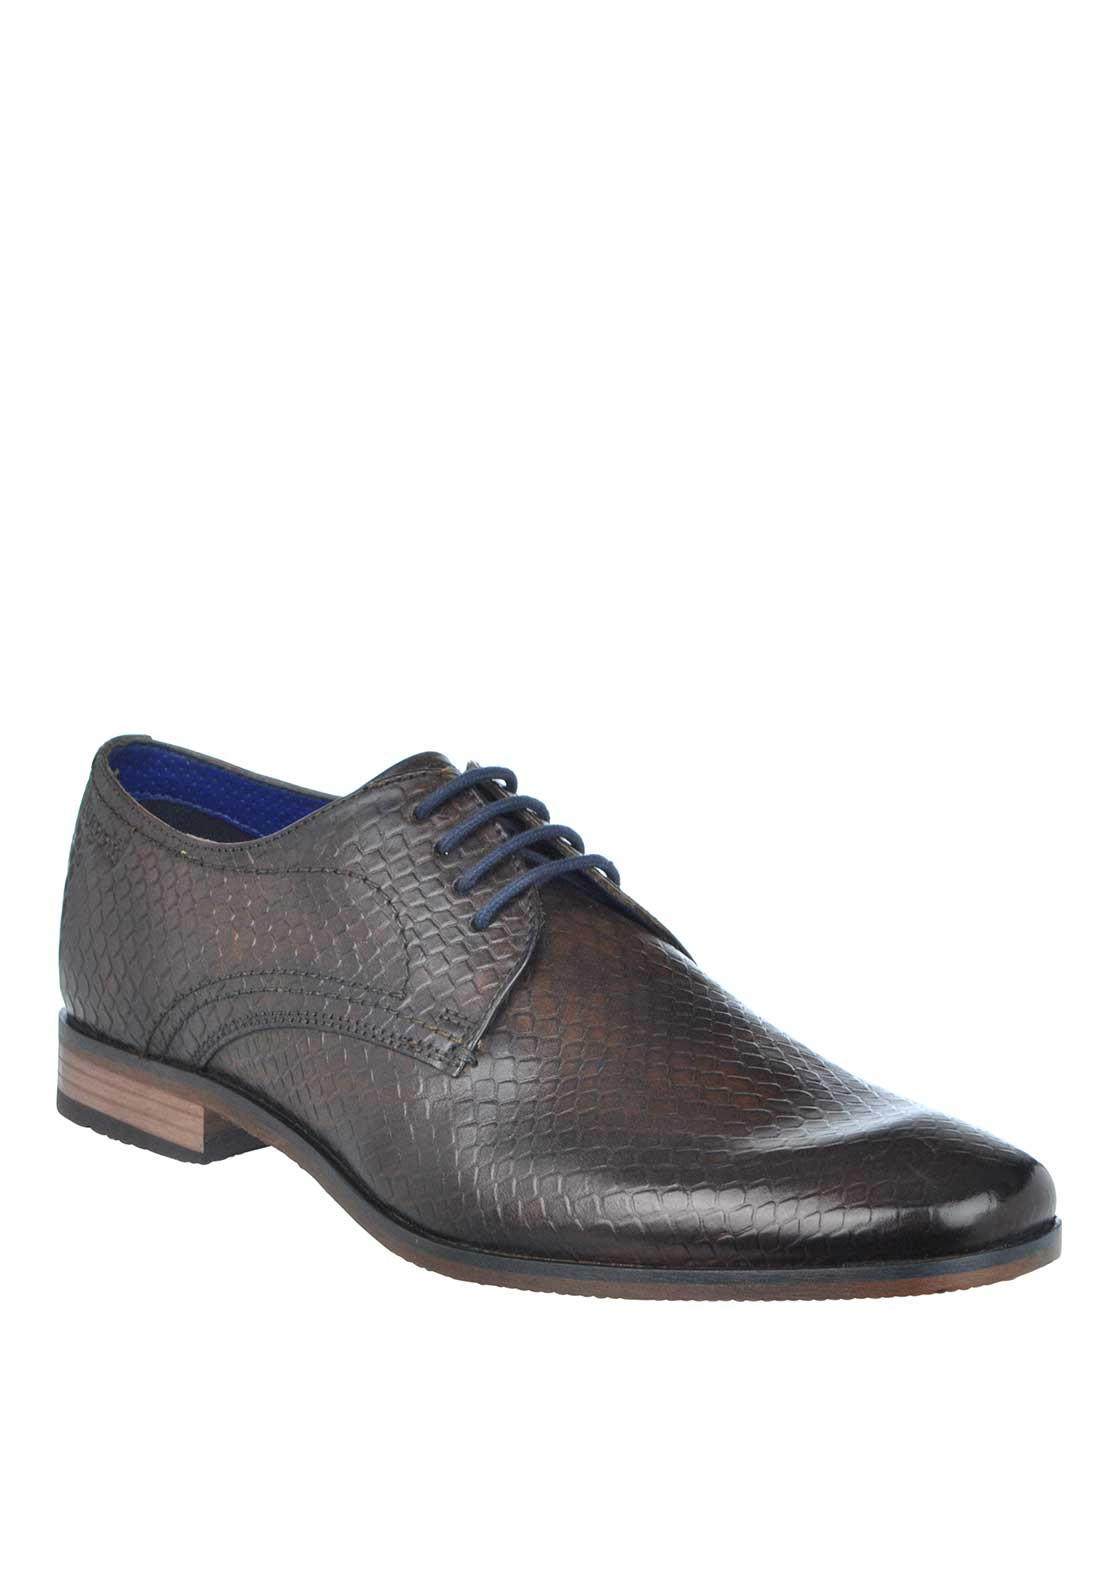 Bugatti Reptile Print Leather Lace Up Shoes, Brown